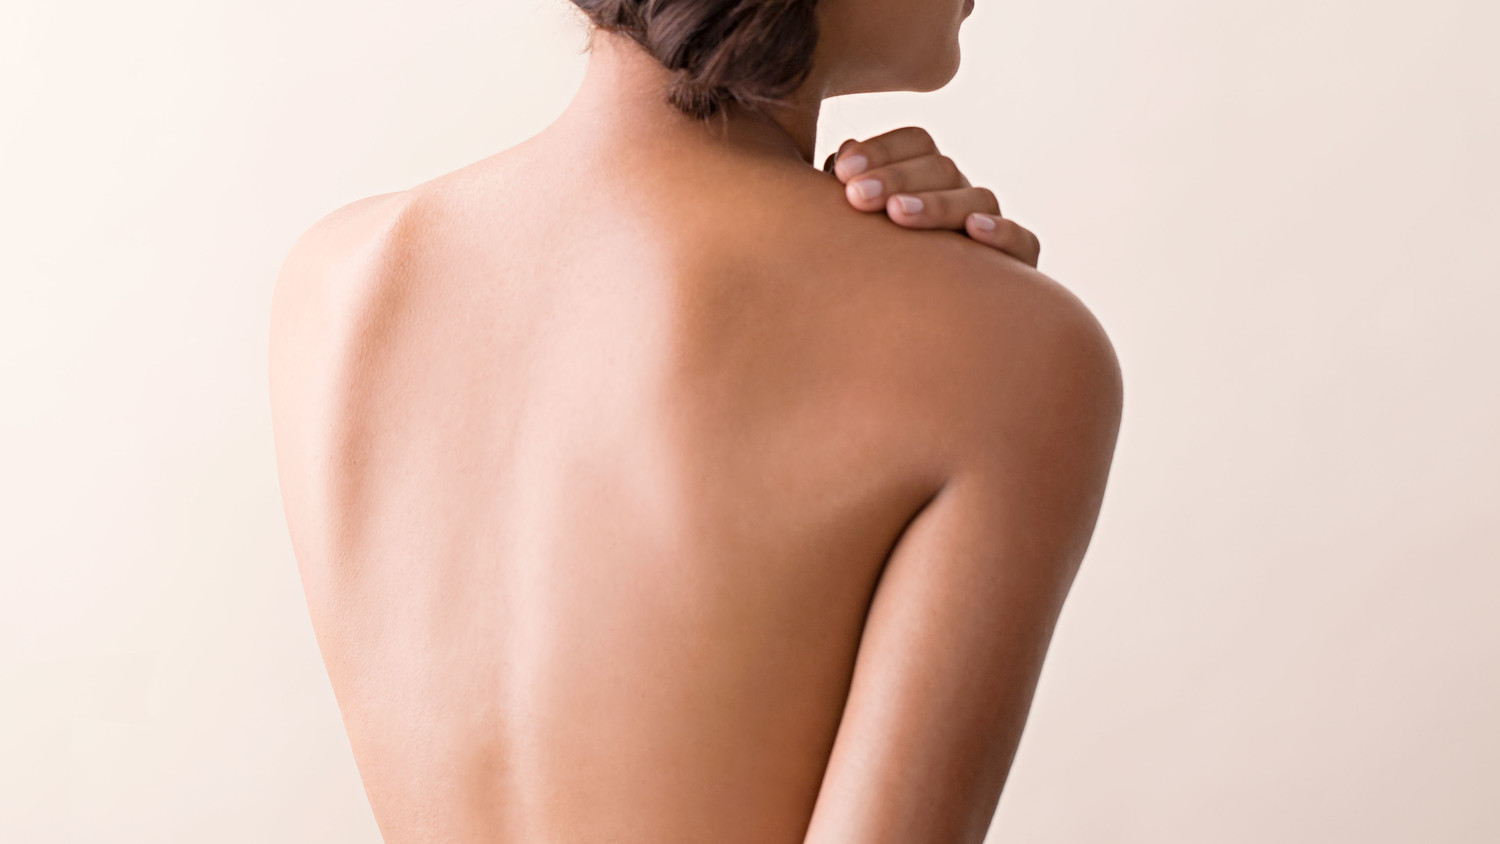 Dry skin on the body: what to do